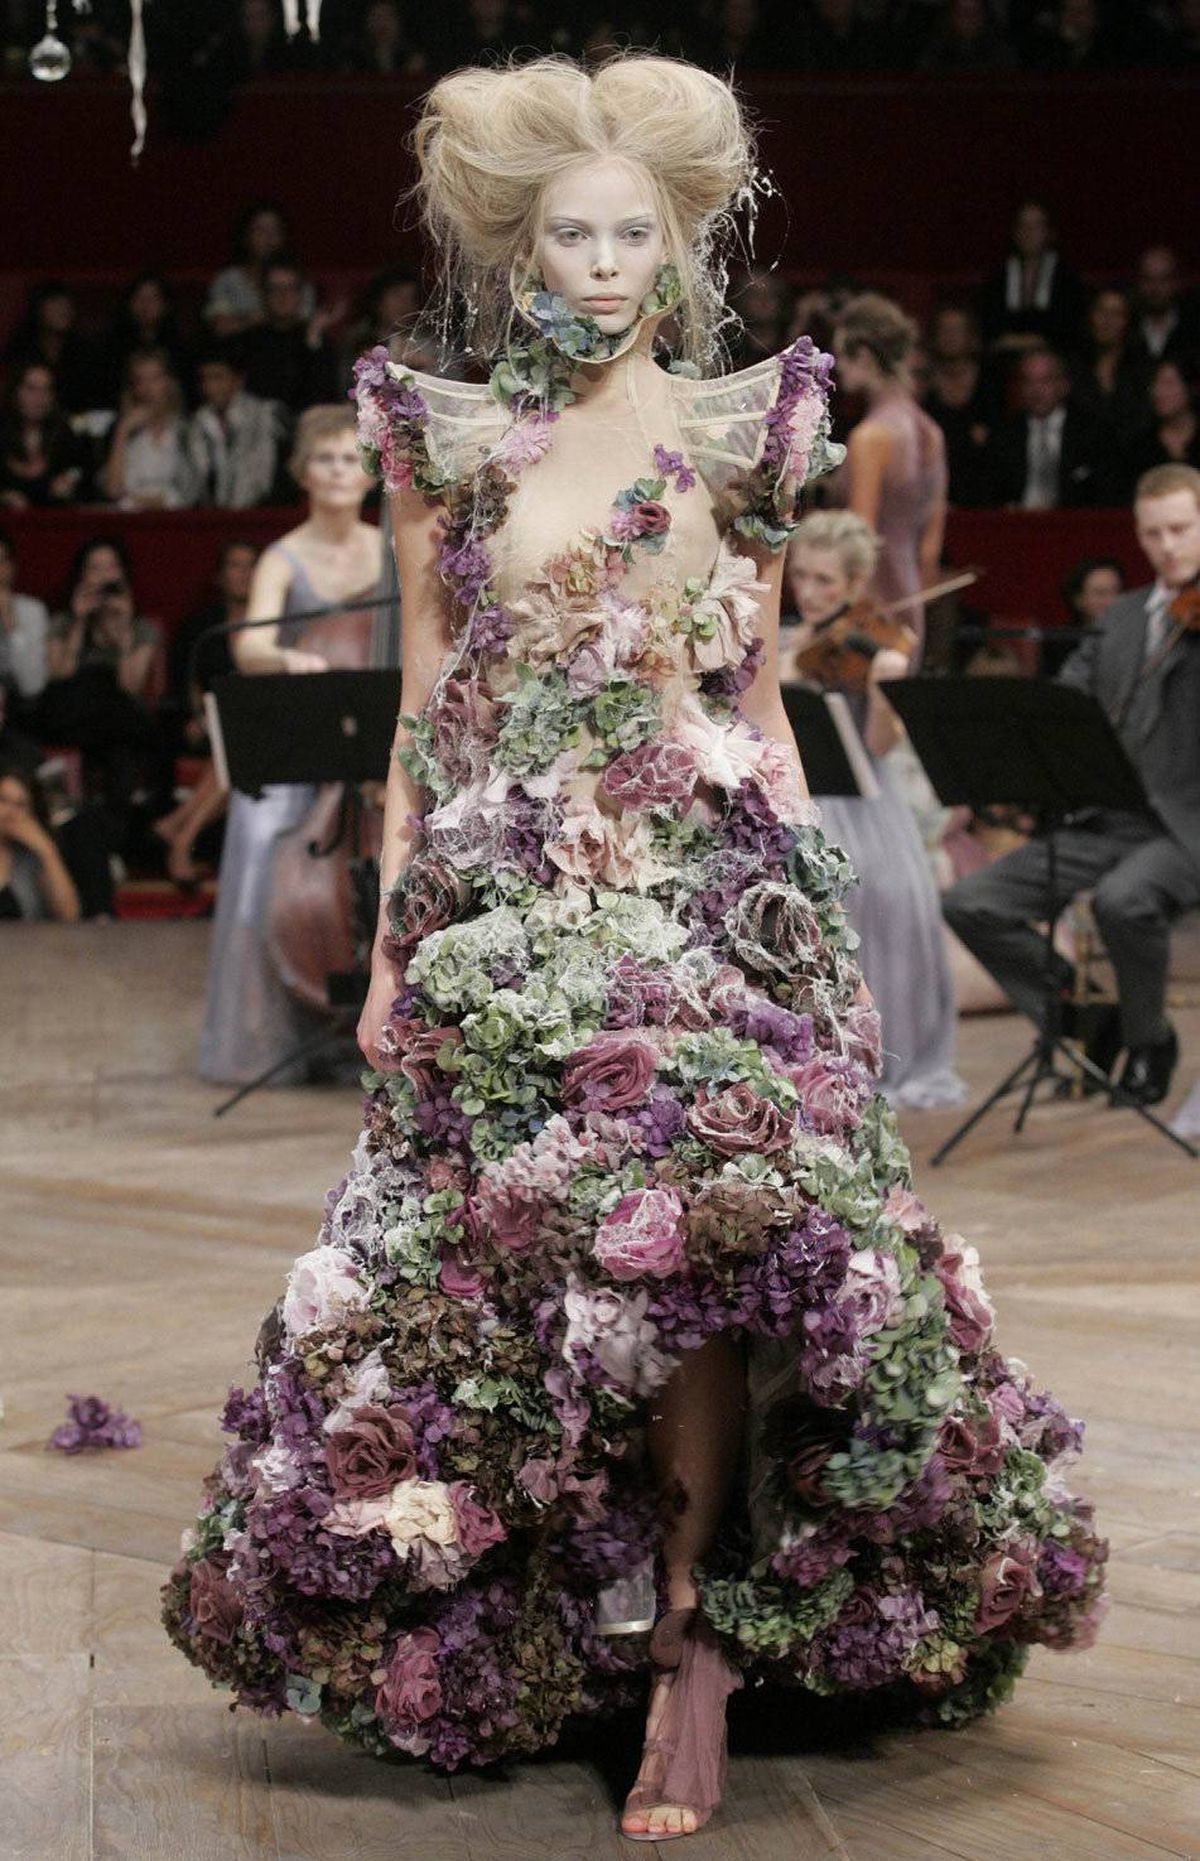 Running themes McQueen: Romanticism in myriad forms